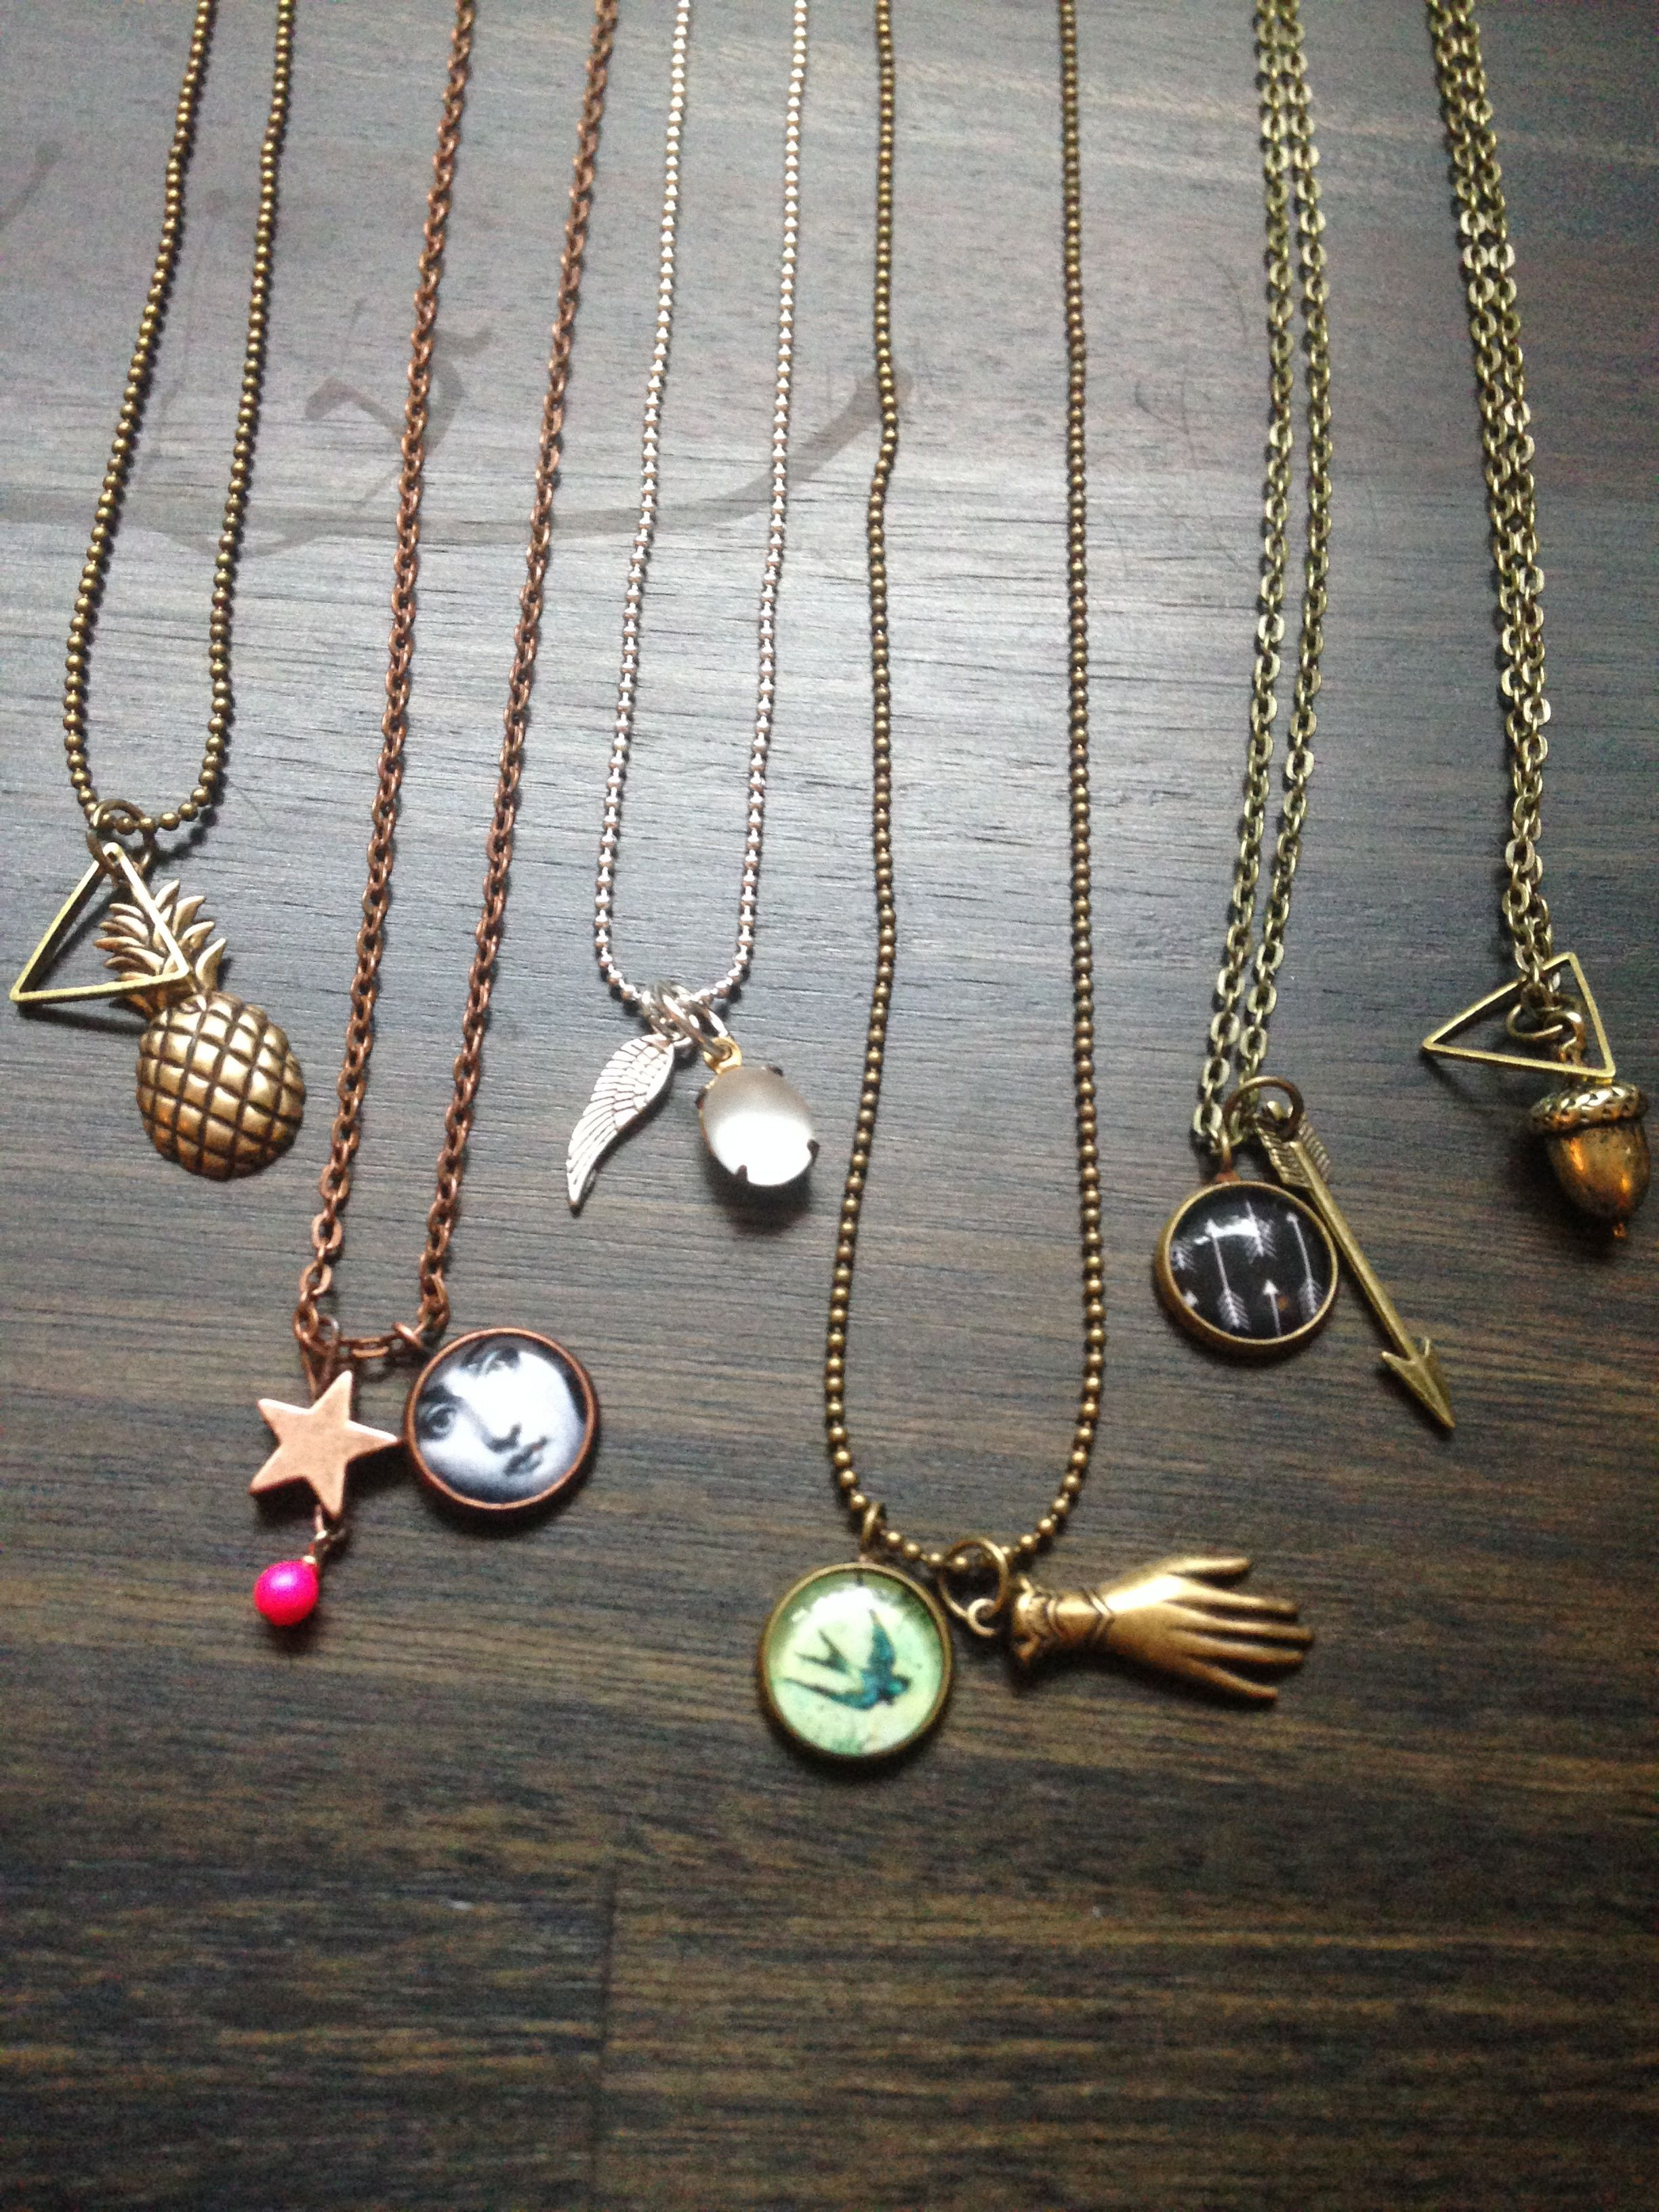 bos & heij collection jewelry